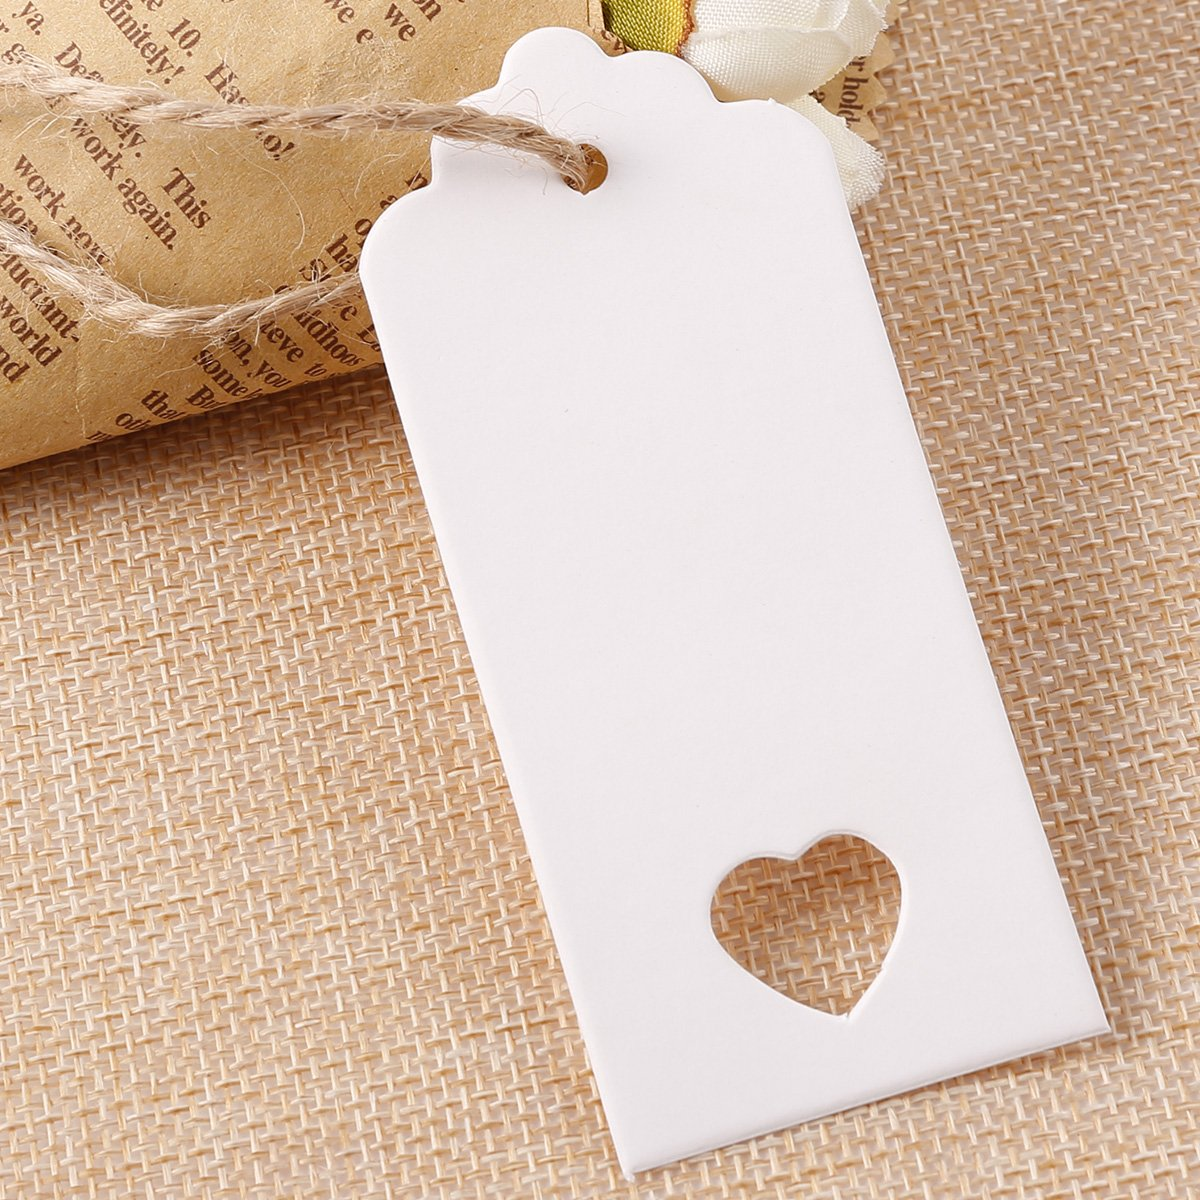 100PCS 9X4CM KRAFT WHITE PAPER TAGS WITH HEART WEDDING GIFT LABEL ...